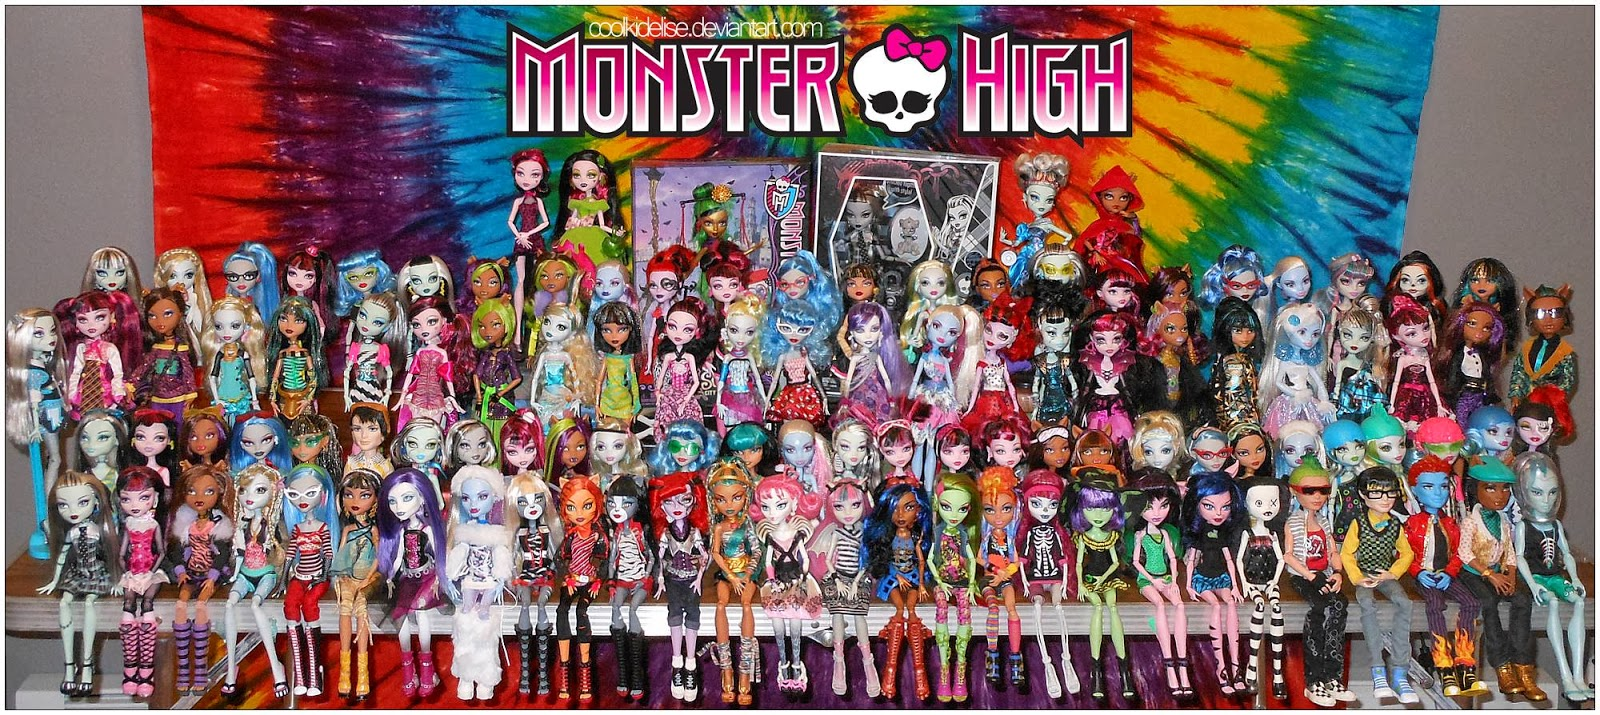 Куклы #Monster #High (Монстер хай) и #Ever #After High ...: png-frames.blogspot.com/2014/03/monster-high-ever-after-high.html